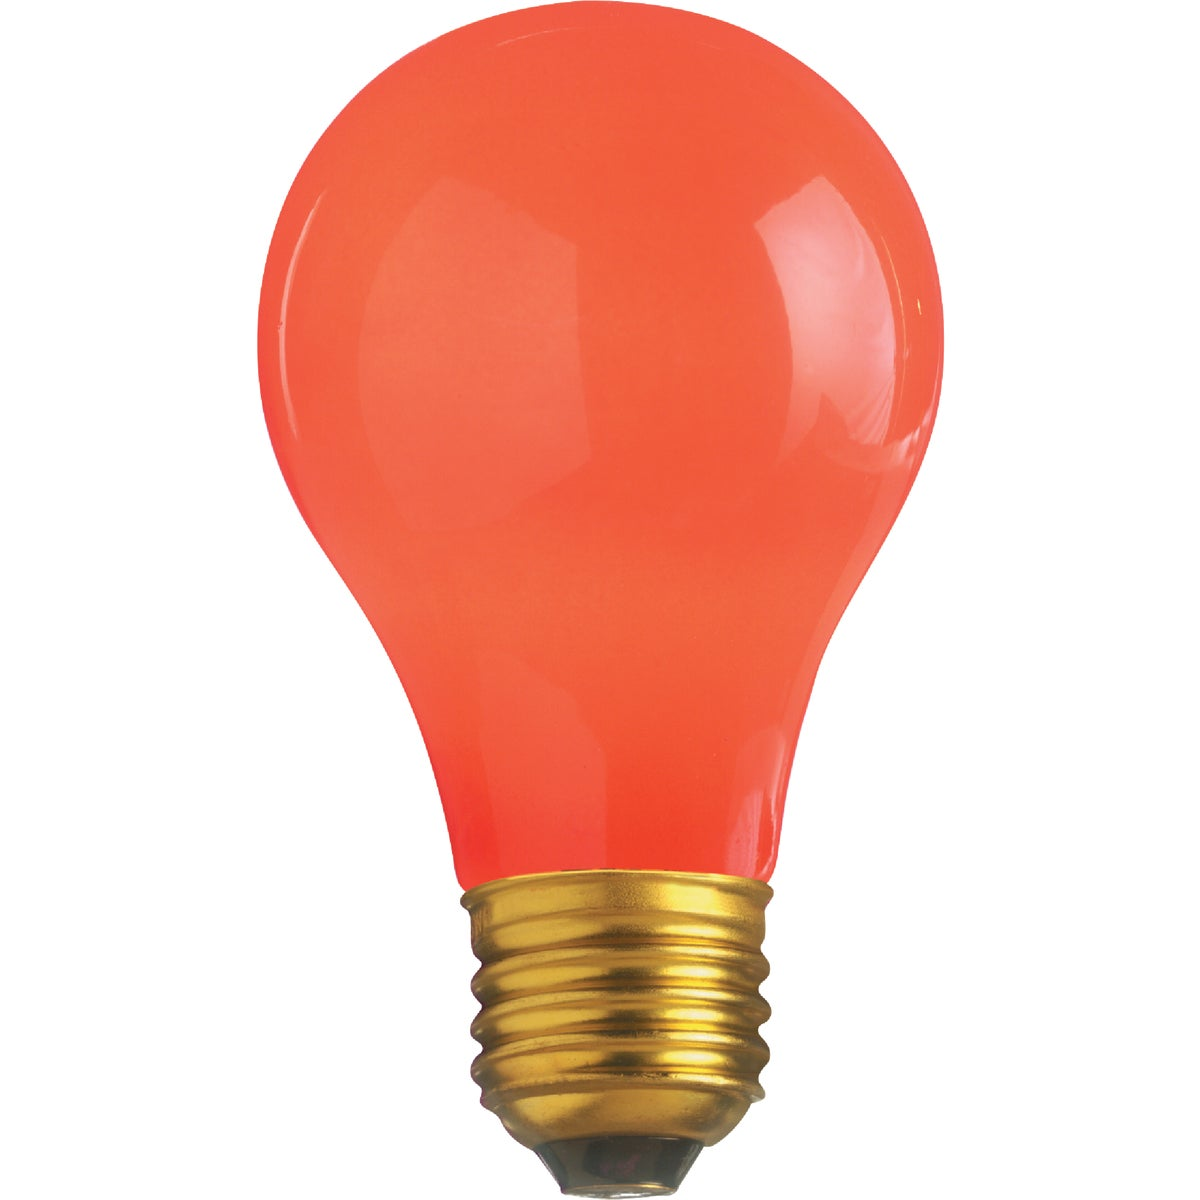 25W RED PARTY BULB - 49727 25A/TR by G E Lighting